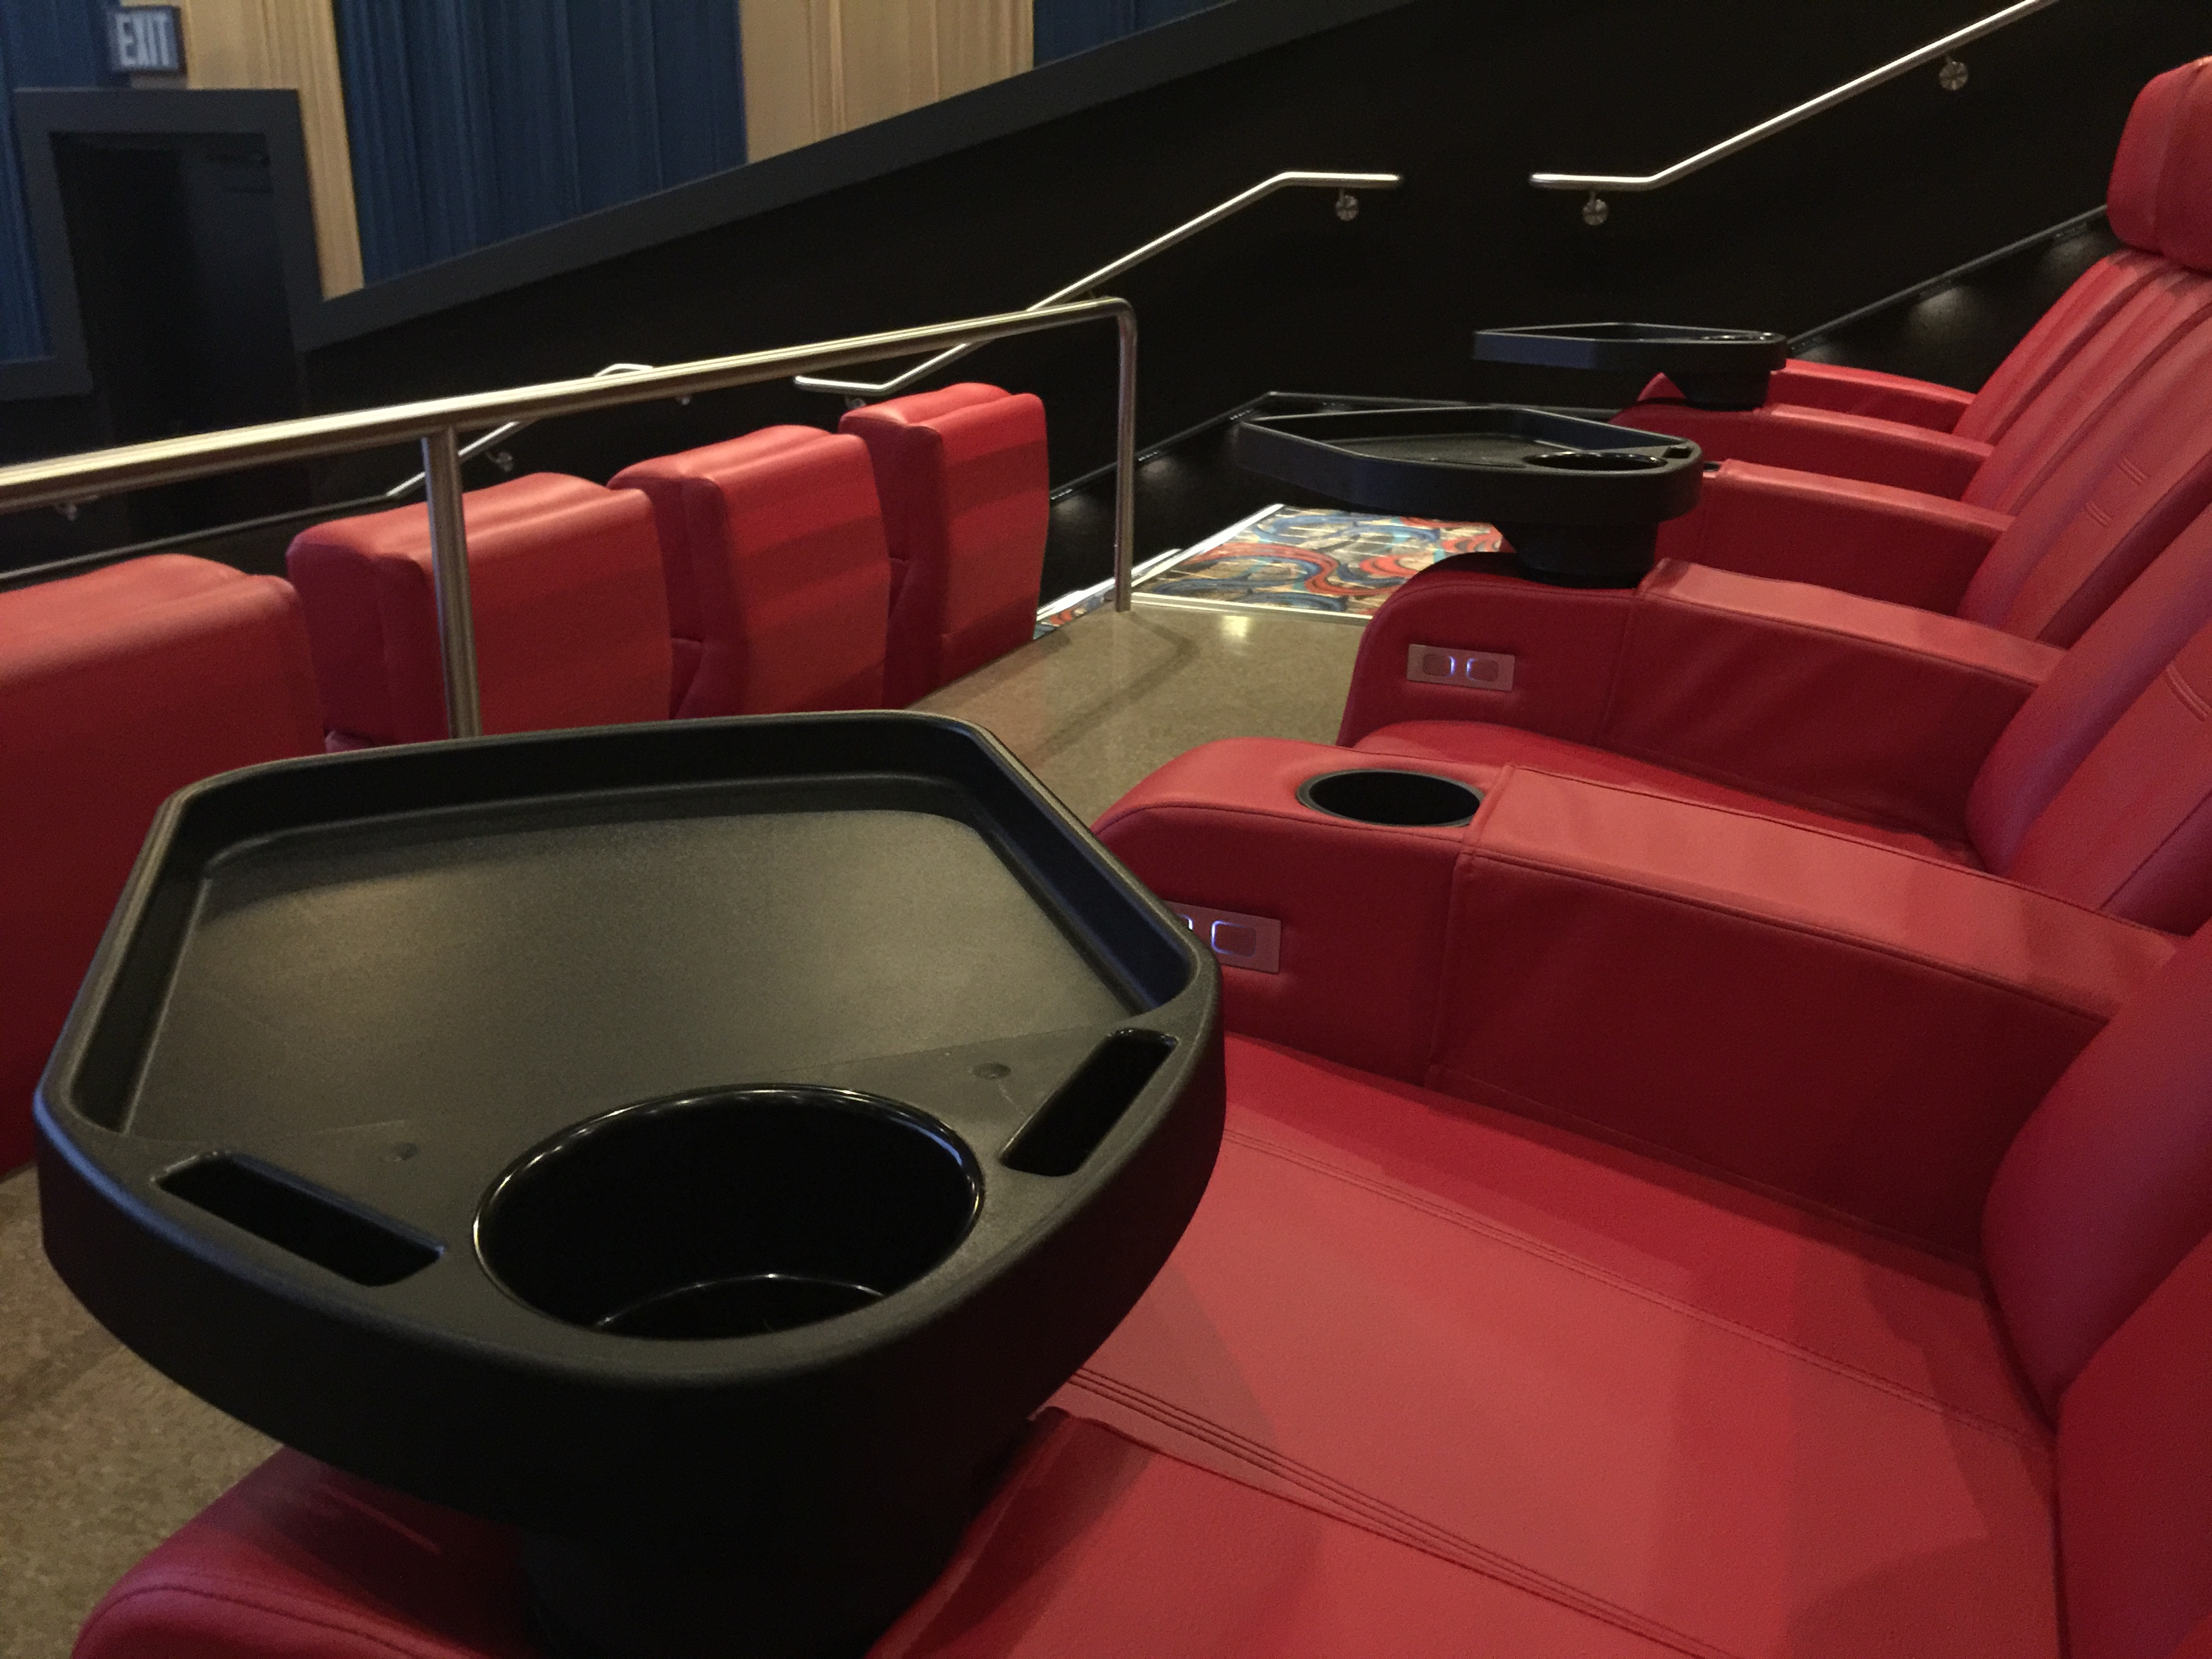 theater chairs with cup holders high chair banner a non fan wouldn 39t see the humor in this howardstern